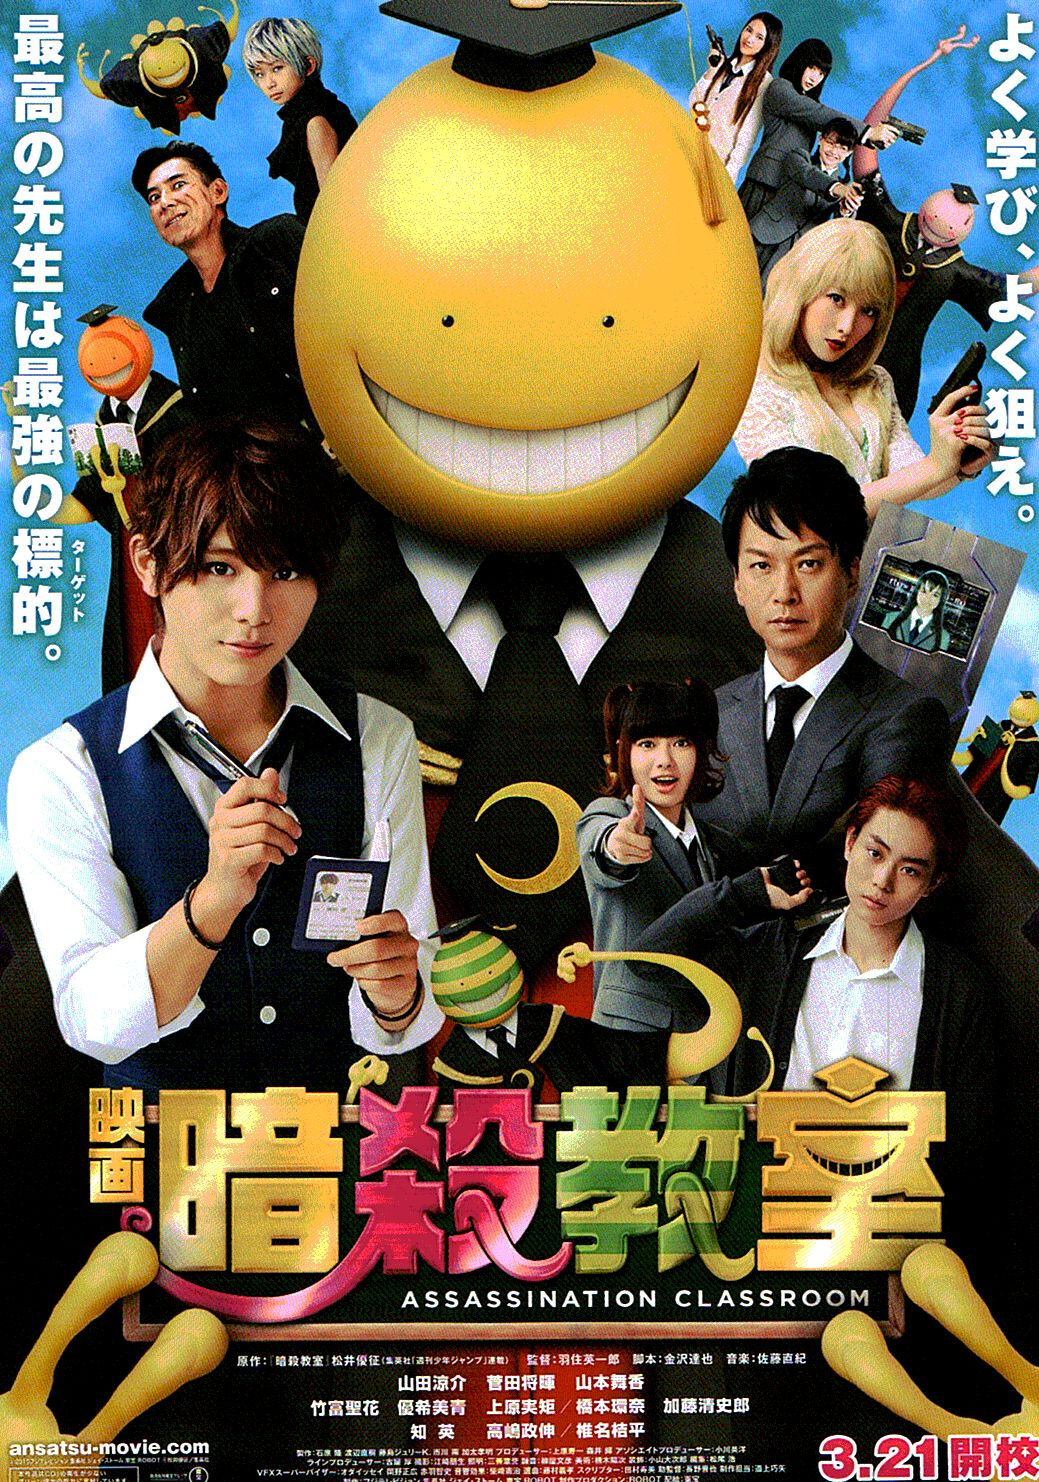 assassination_classroom_poster_2015_01.jpg